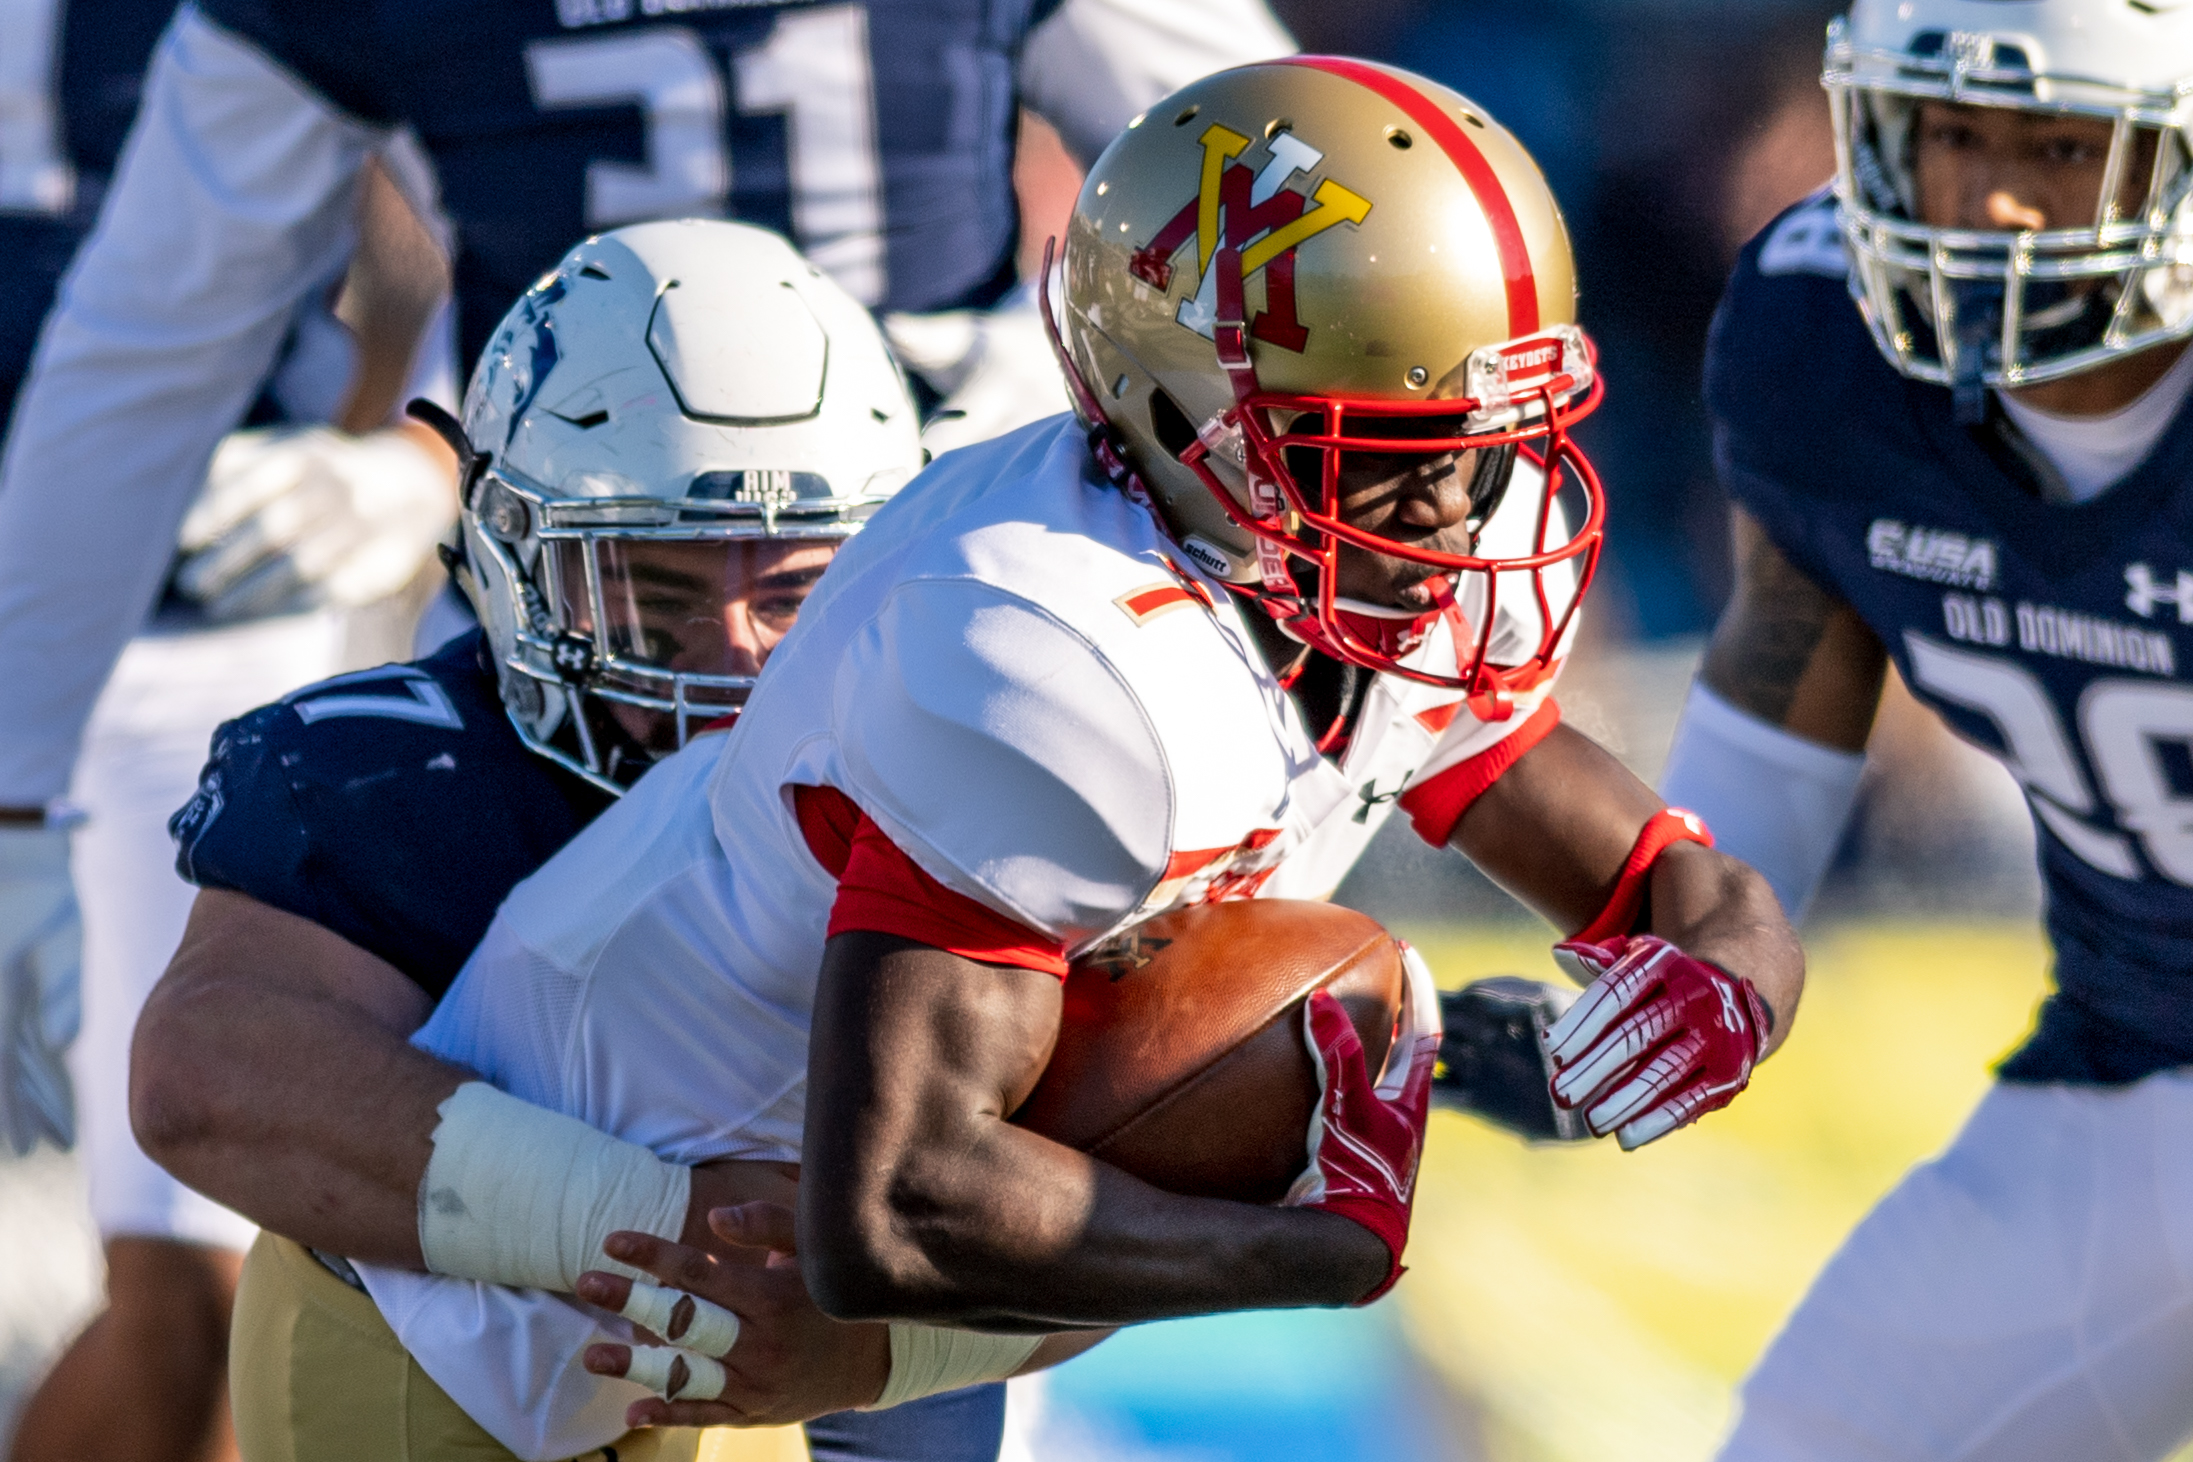 Virginia Military Institute Keydets wide receiver Javeon Lara (7) gets tackled by Old Dominion Monarchs defensive tackle Pat Toal Jr. (17) during the Saturday, Nov. 17, 2018 game held at Old Dominion University in Norfolk, Virginia. Old Dominion leads VMI 49 to 0 at halftime.